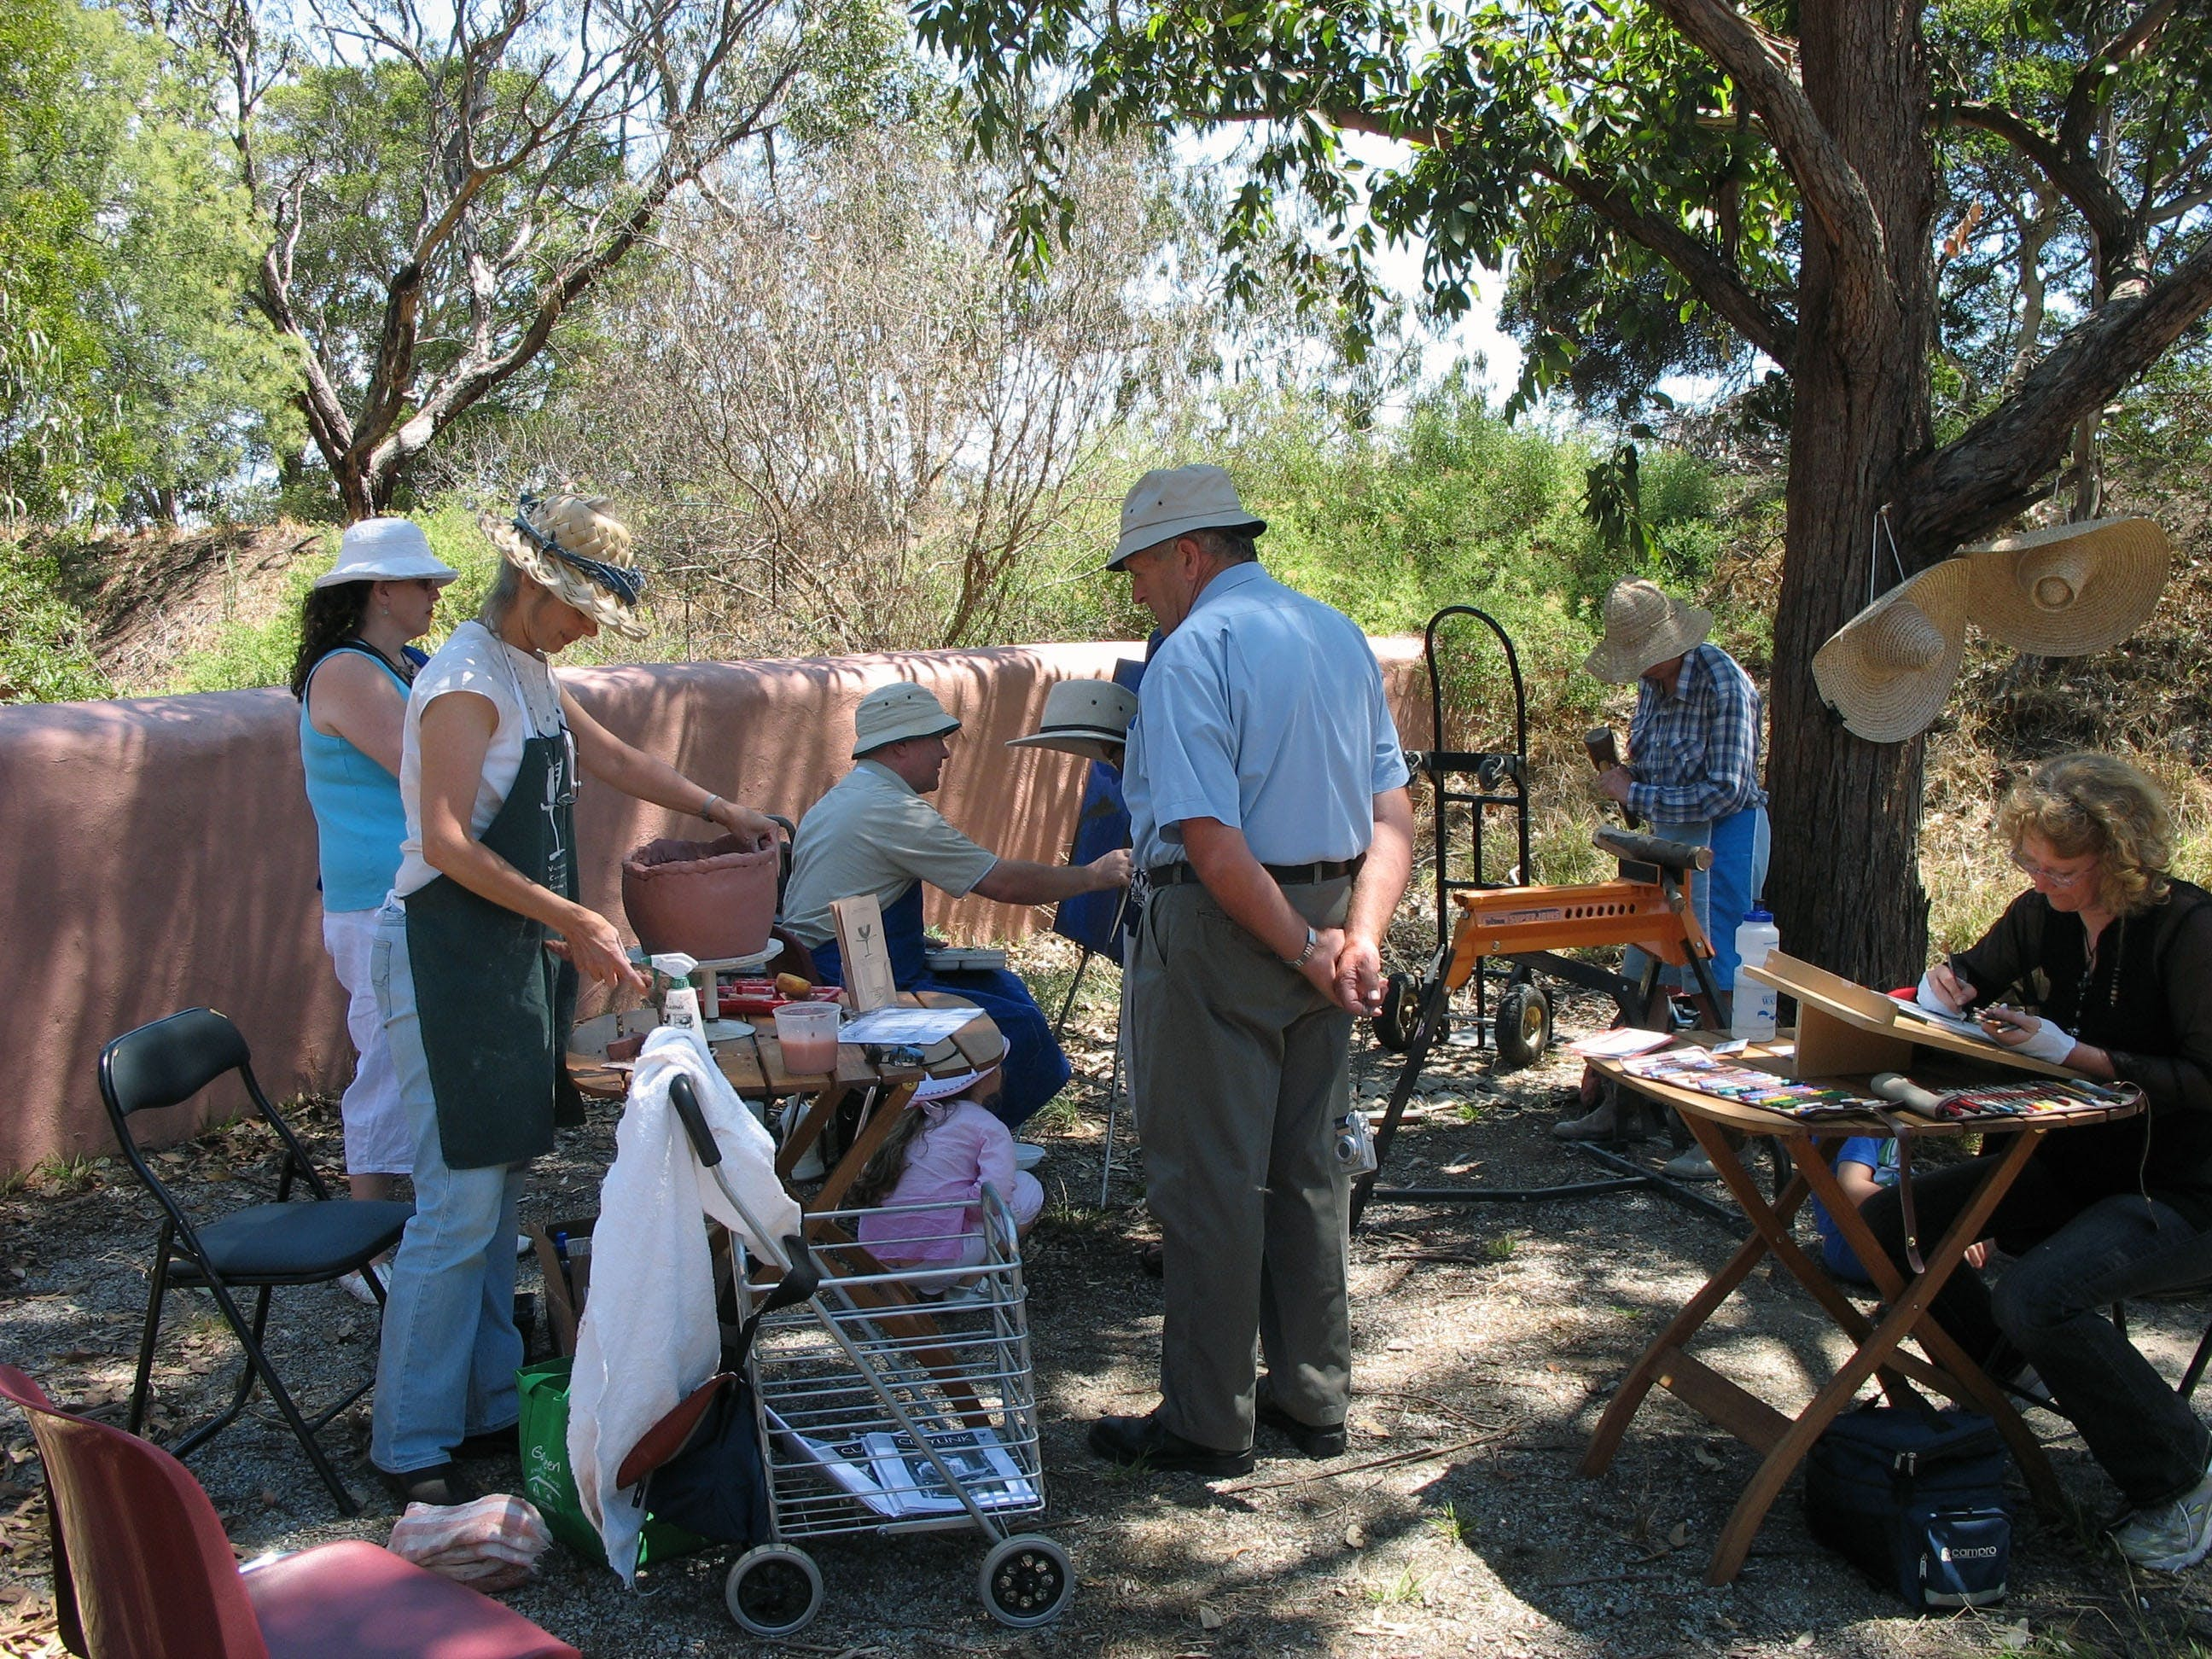 Herring Island Summer Arts Festival - VIC Tourism